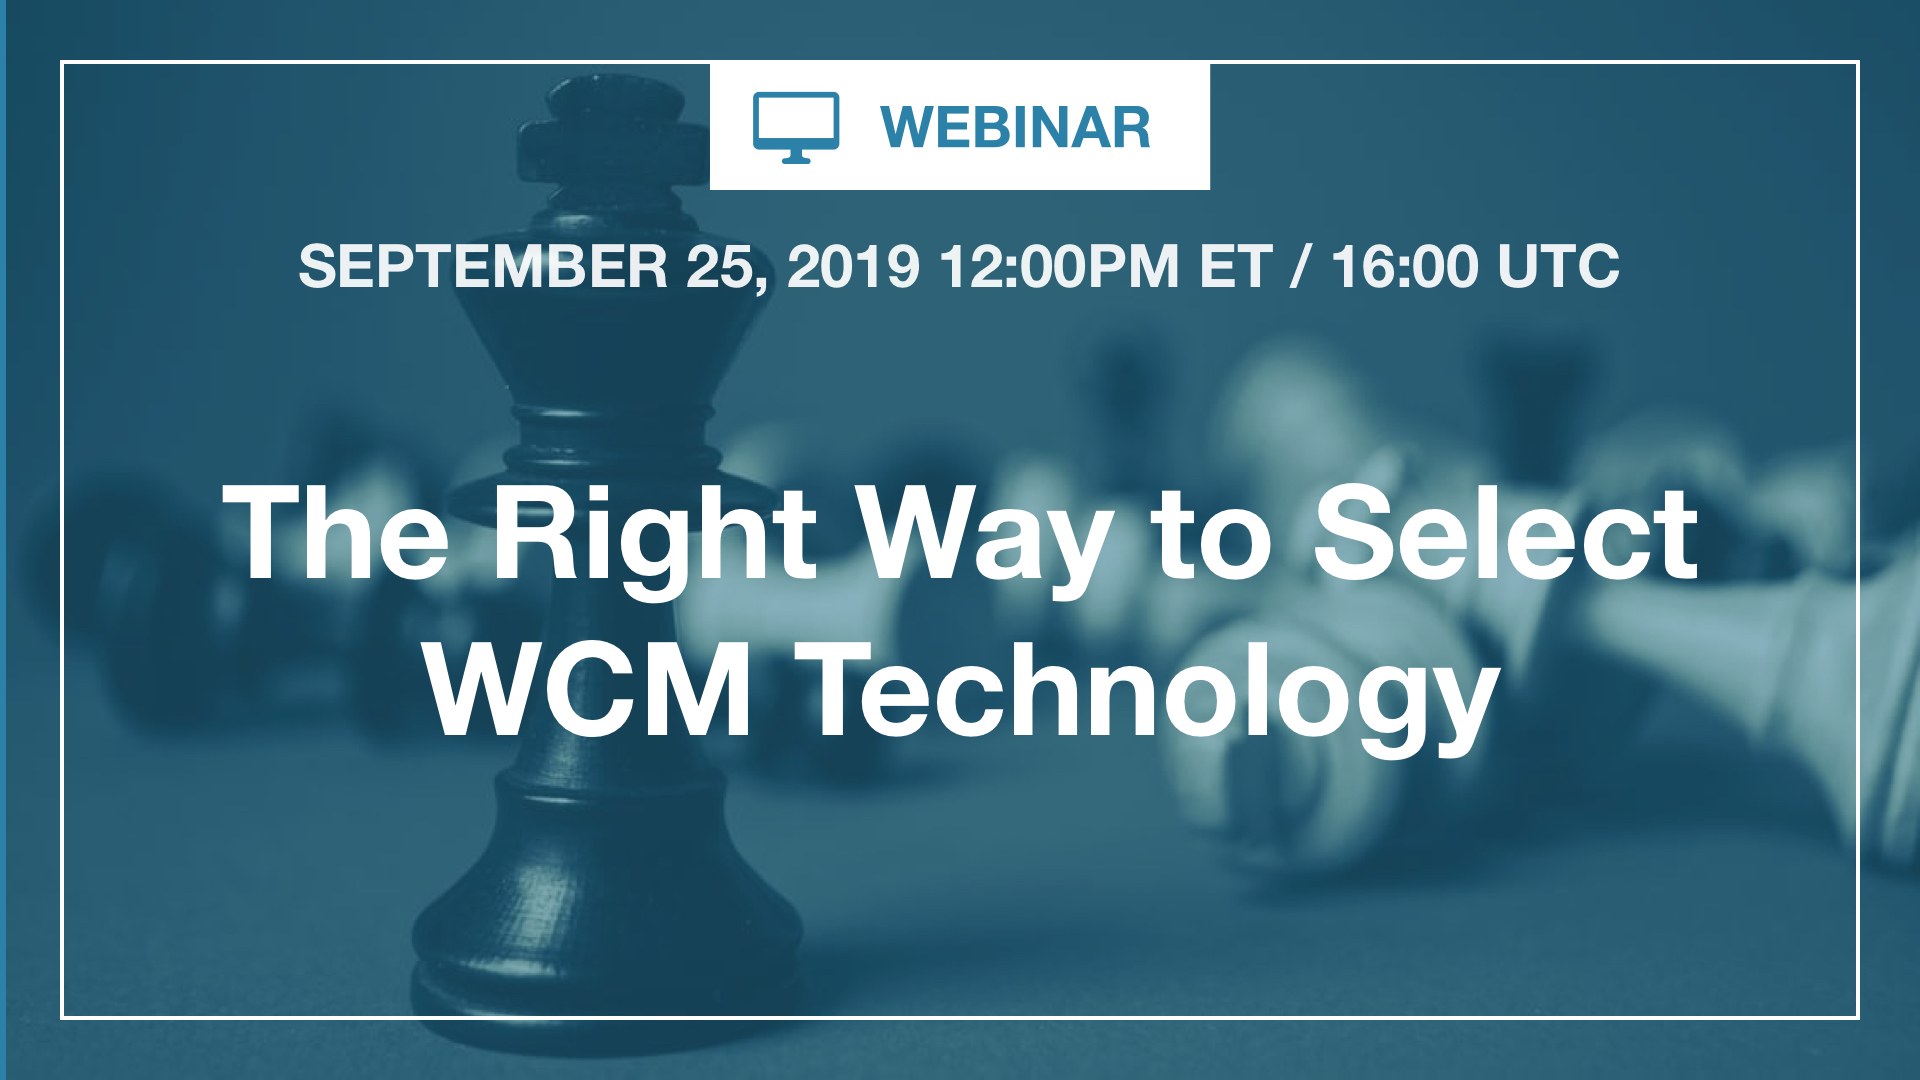 [Webinar] The Right Way to Select WCM Technology